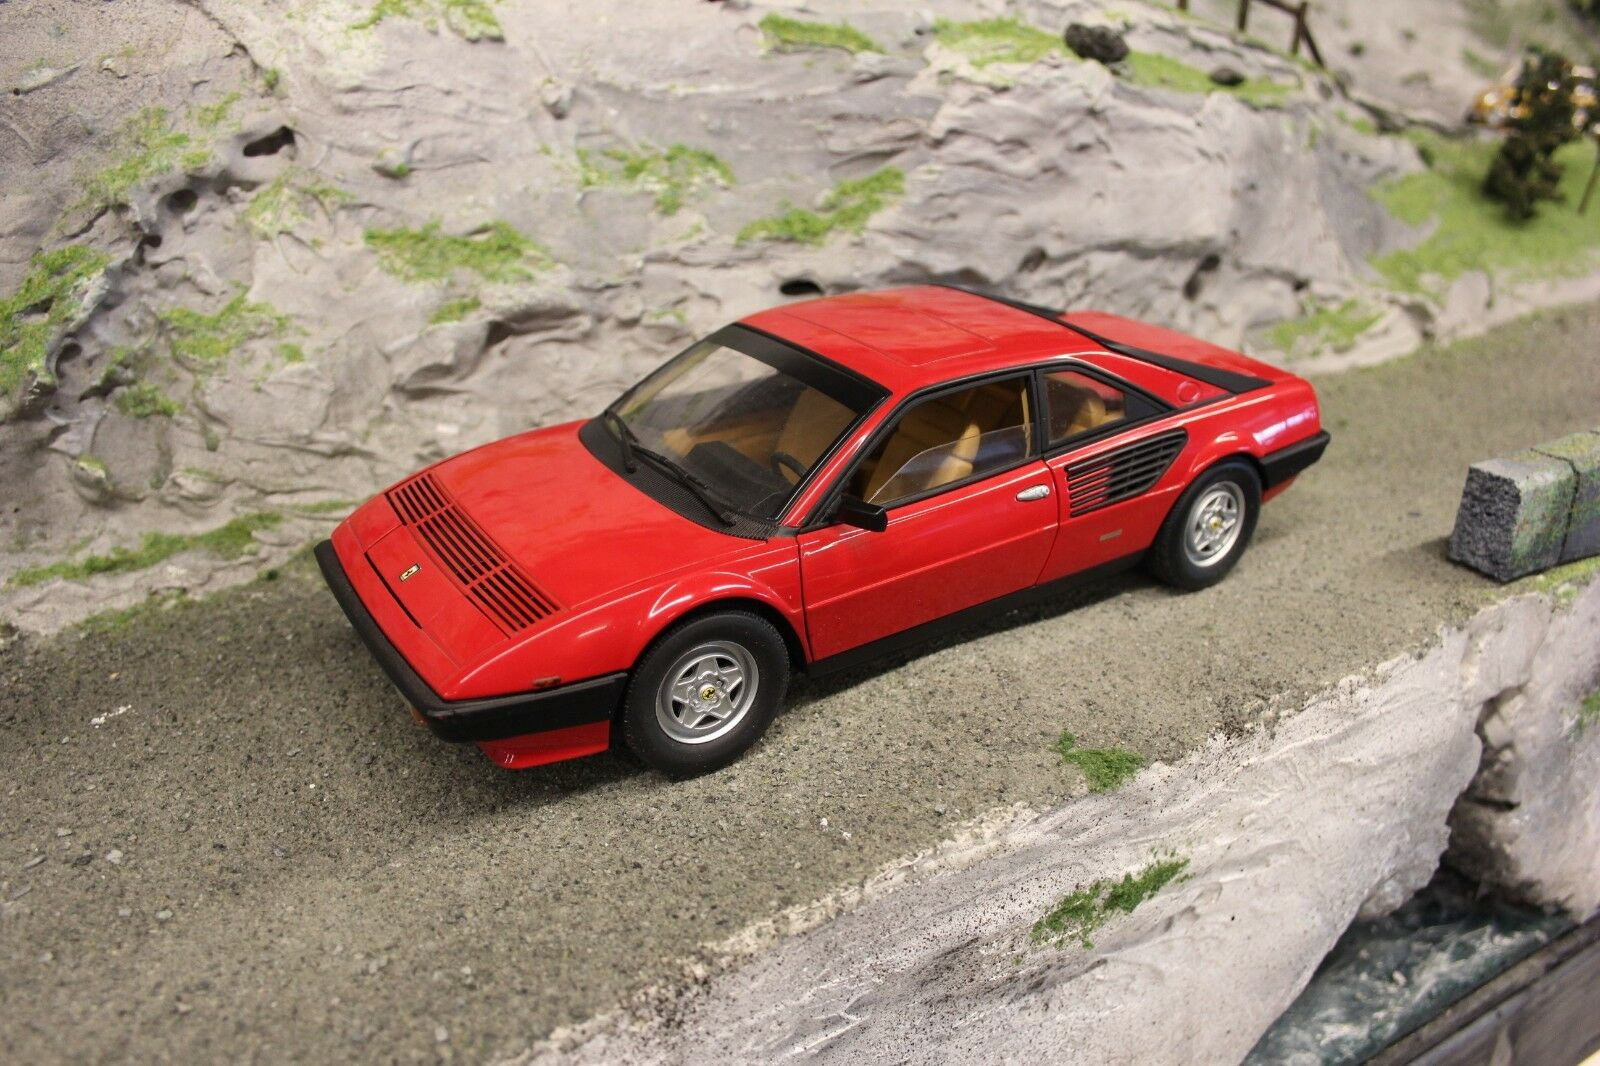 Hot wheels - elite ferrari mondial 1,18 rot 3.2